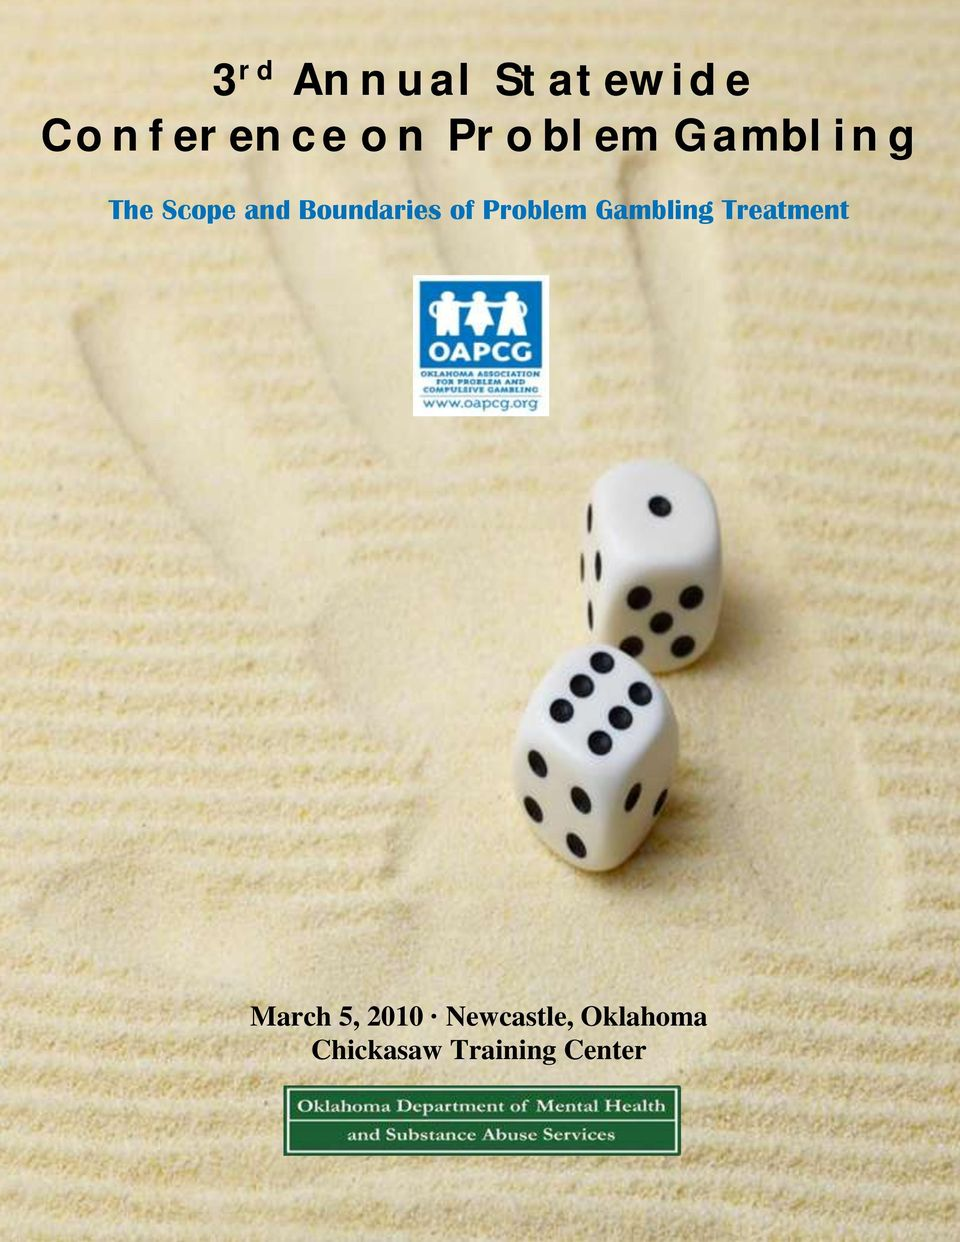 of Problem Gambling Treatment March 5,